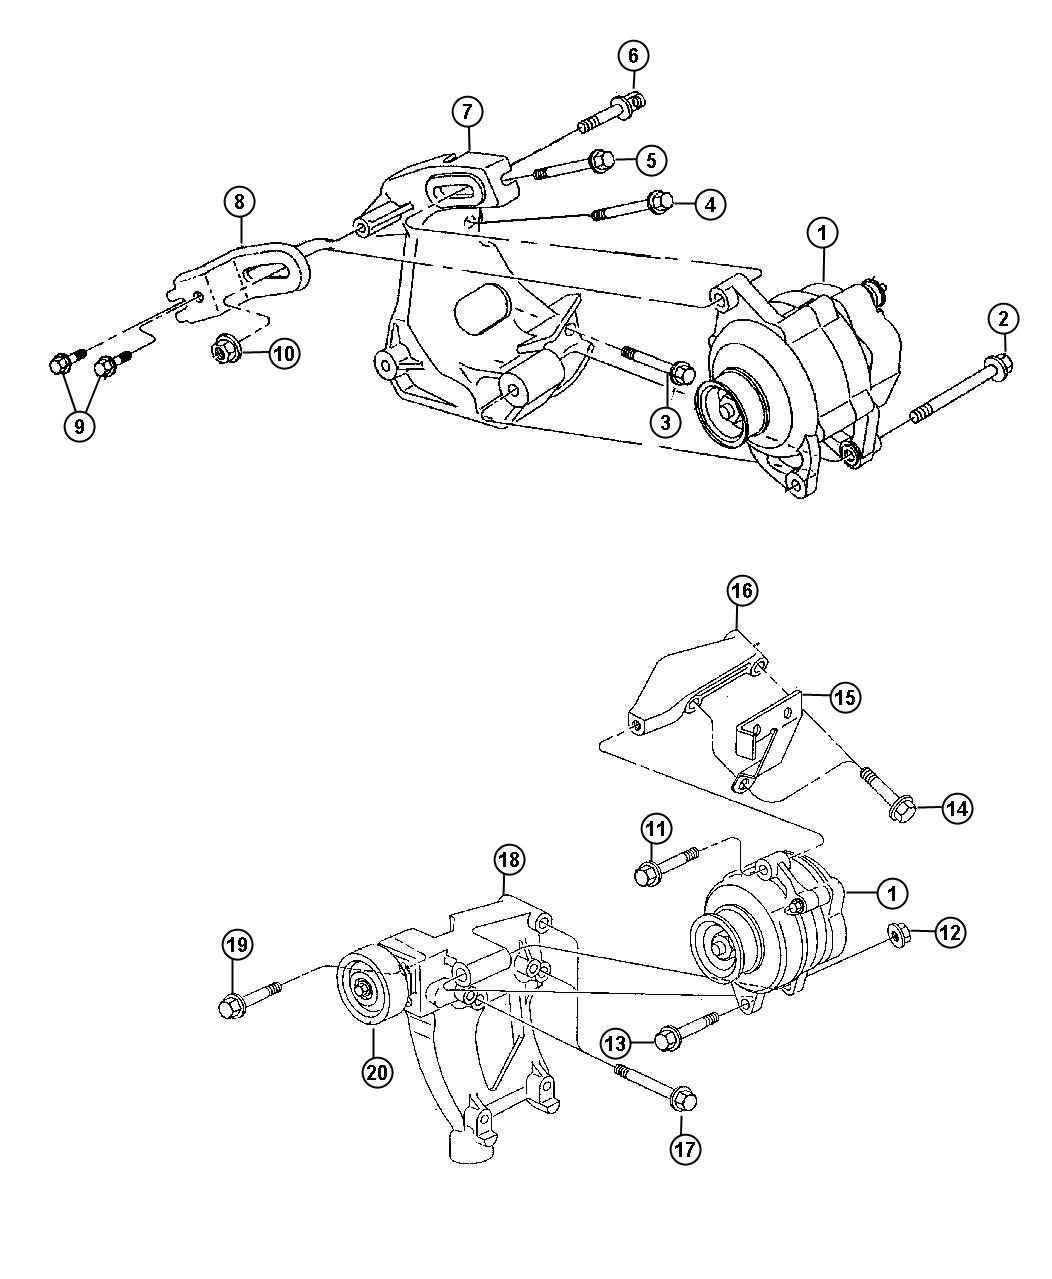 Dodge Stratus Timing Belt Location together with Jeep Tj Reverse Light Wiring Diagram Html in addition T13181948 Replace crankshaft position sensor 2001 additionally Hyundai Elantra O2 Sensor Replacement also 2004 Chrysler Pacifica Repair Manual. on pt cruiser crankshaft sensor replacement